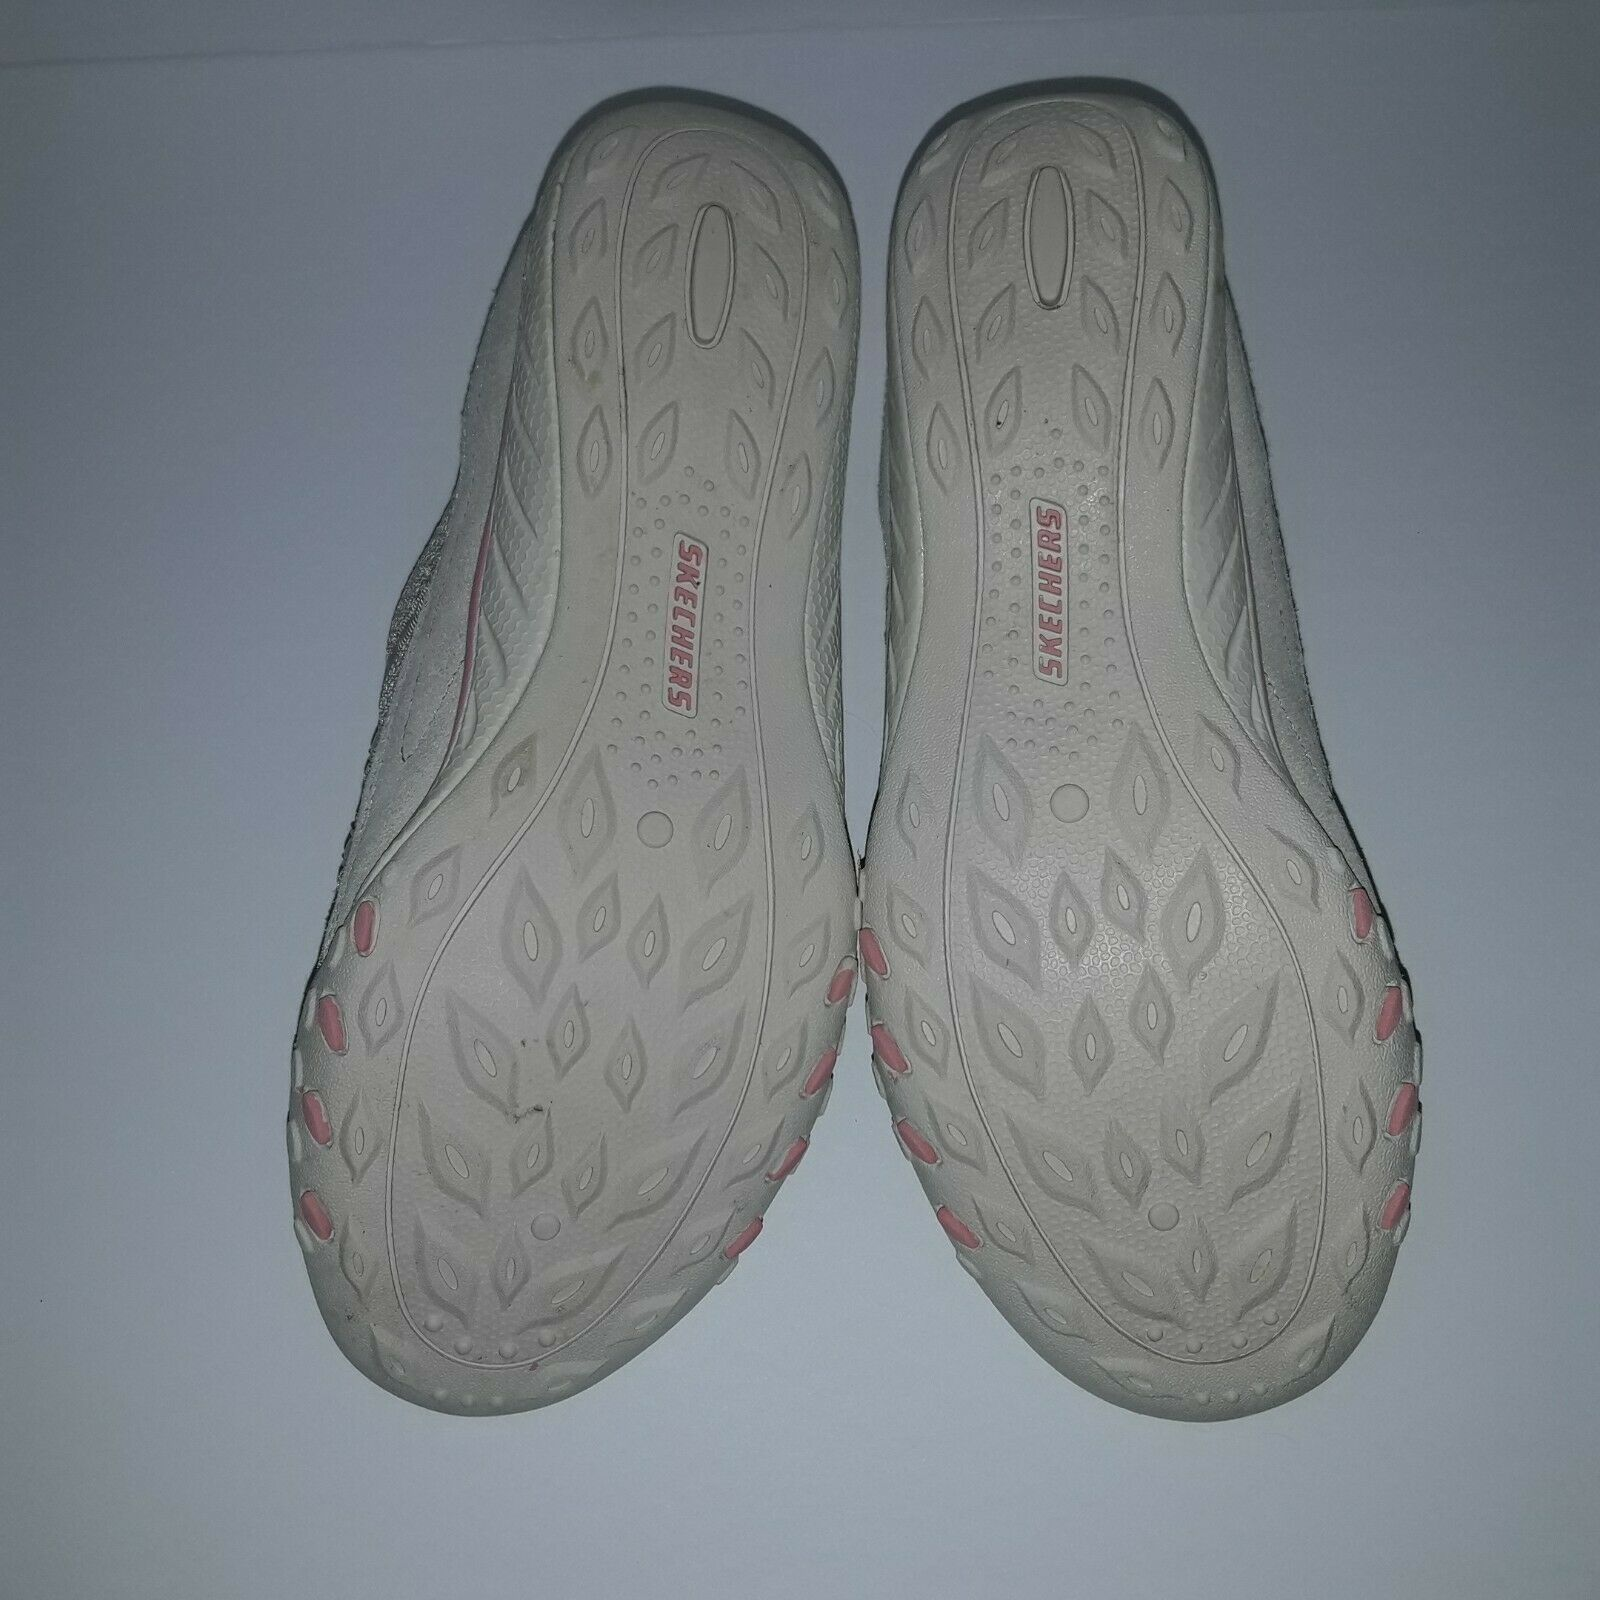 Women's Skechers Relaxed Fit Savvy Baroness shoe Size 9 Natural/Pink image 6